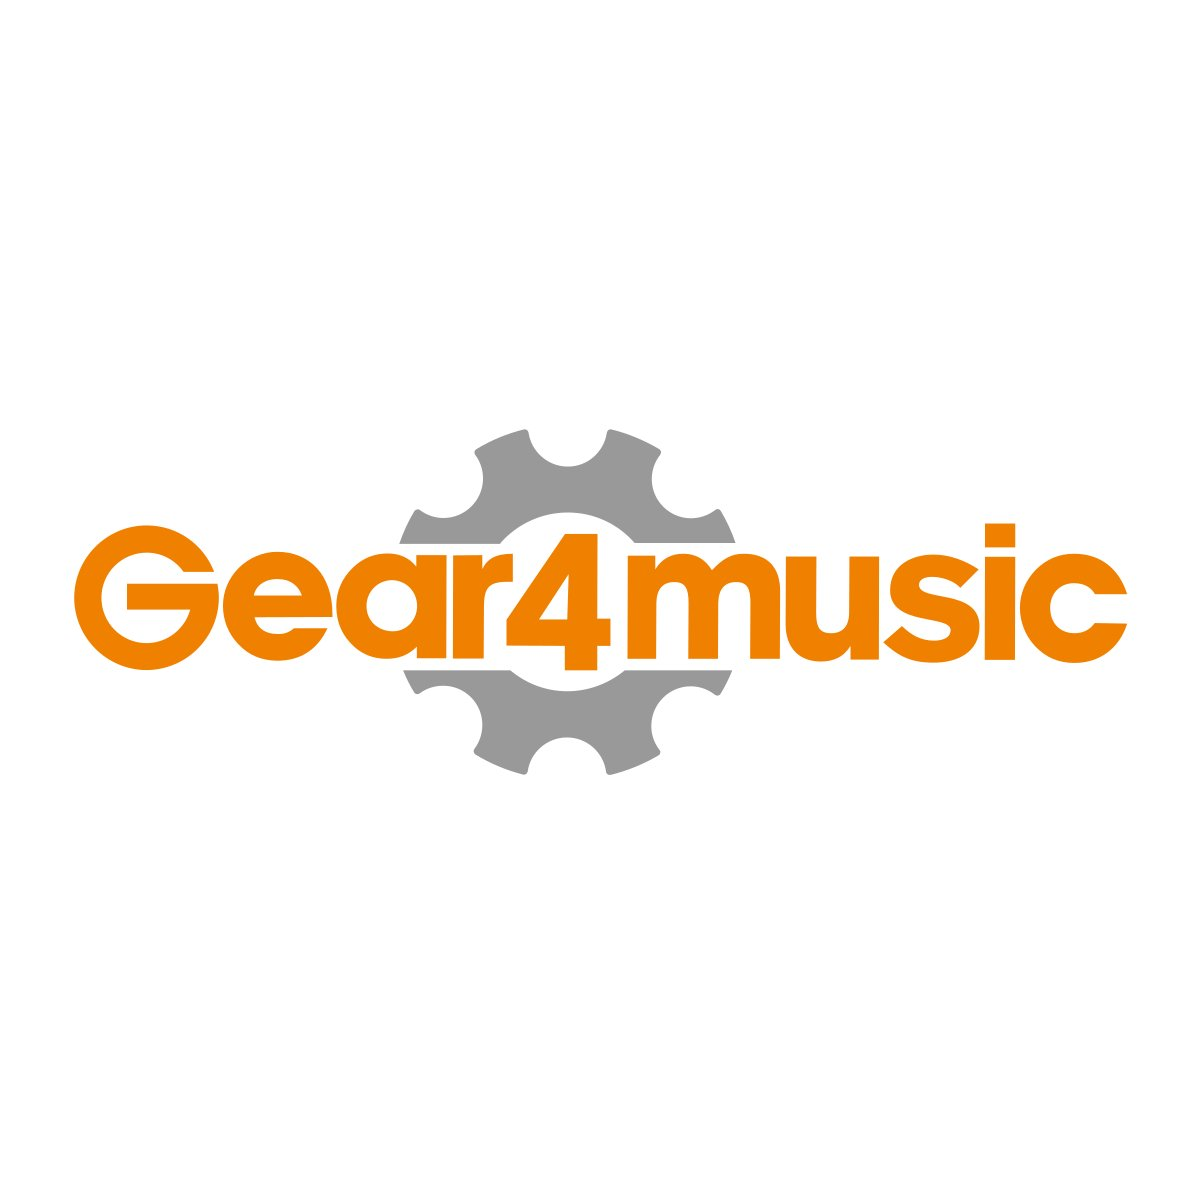 Gear4music, 9 Light Nuottiteline LED